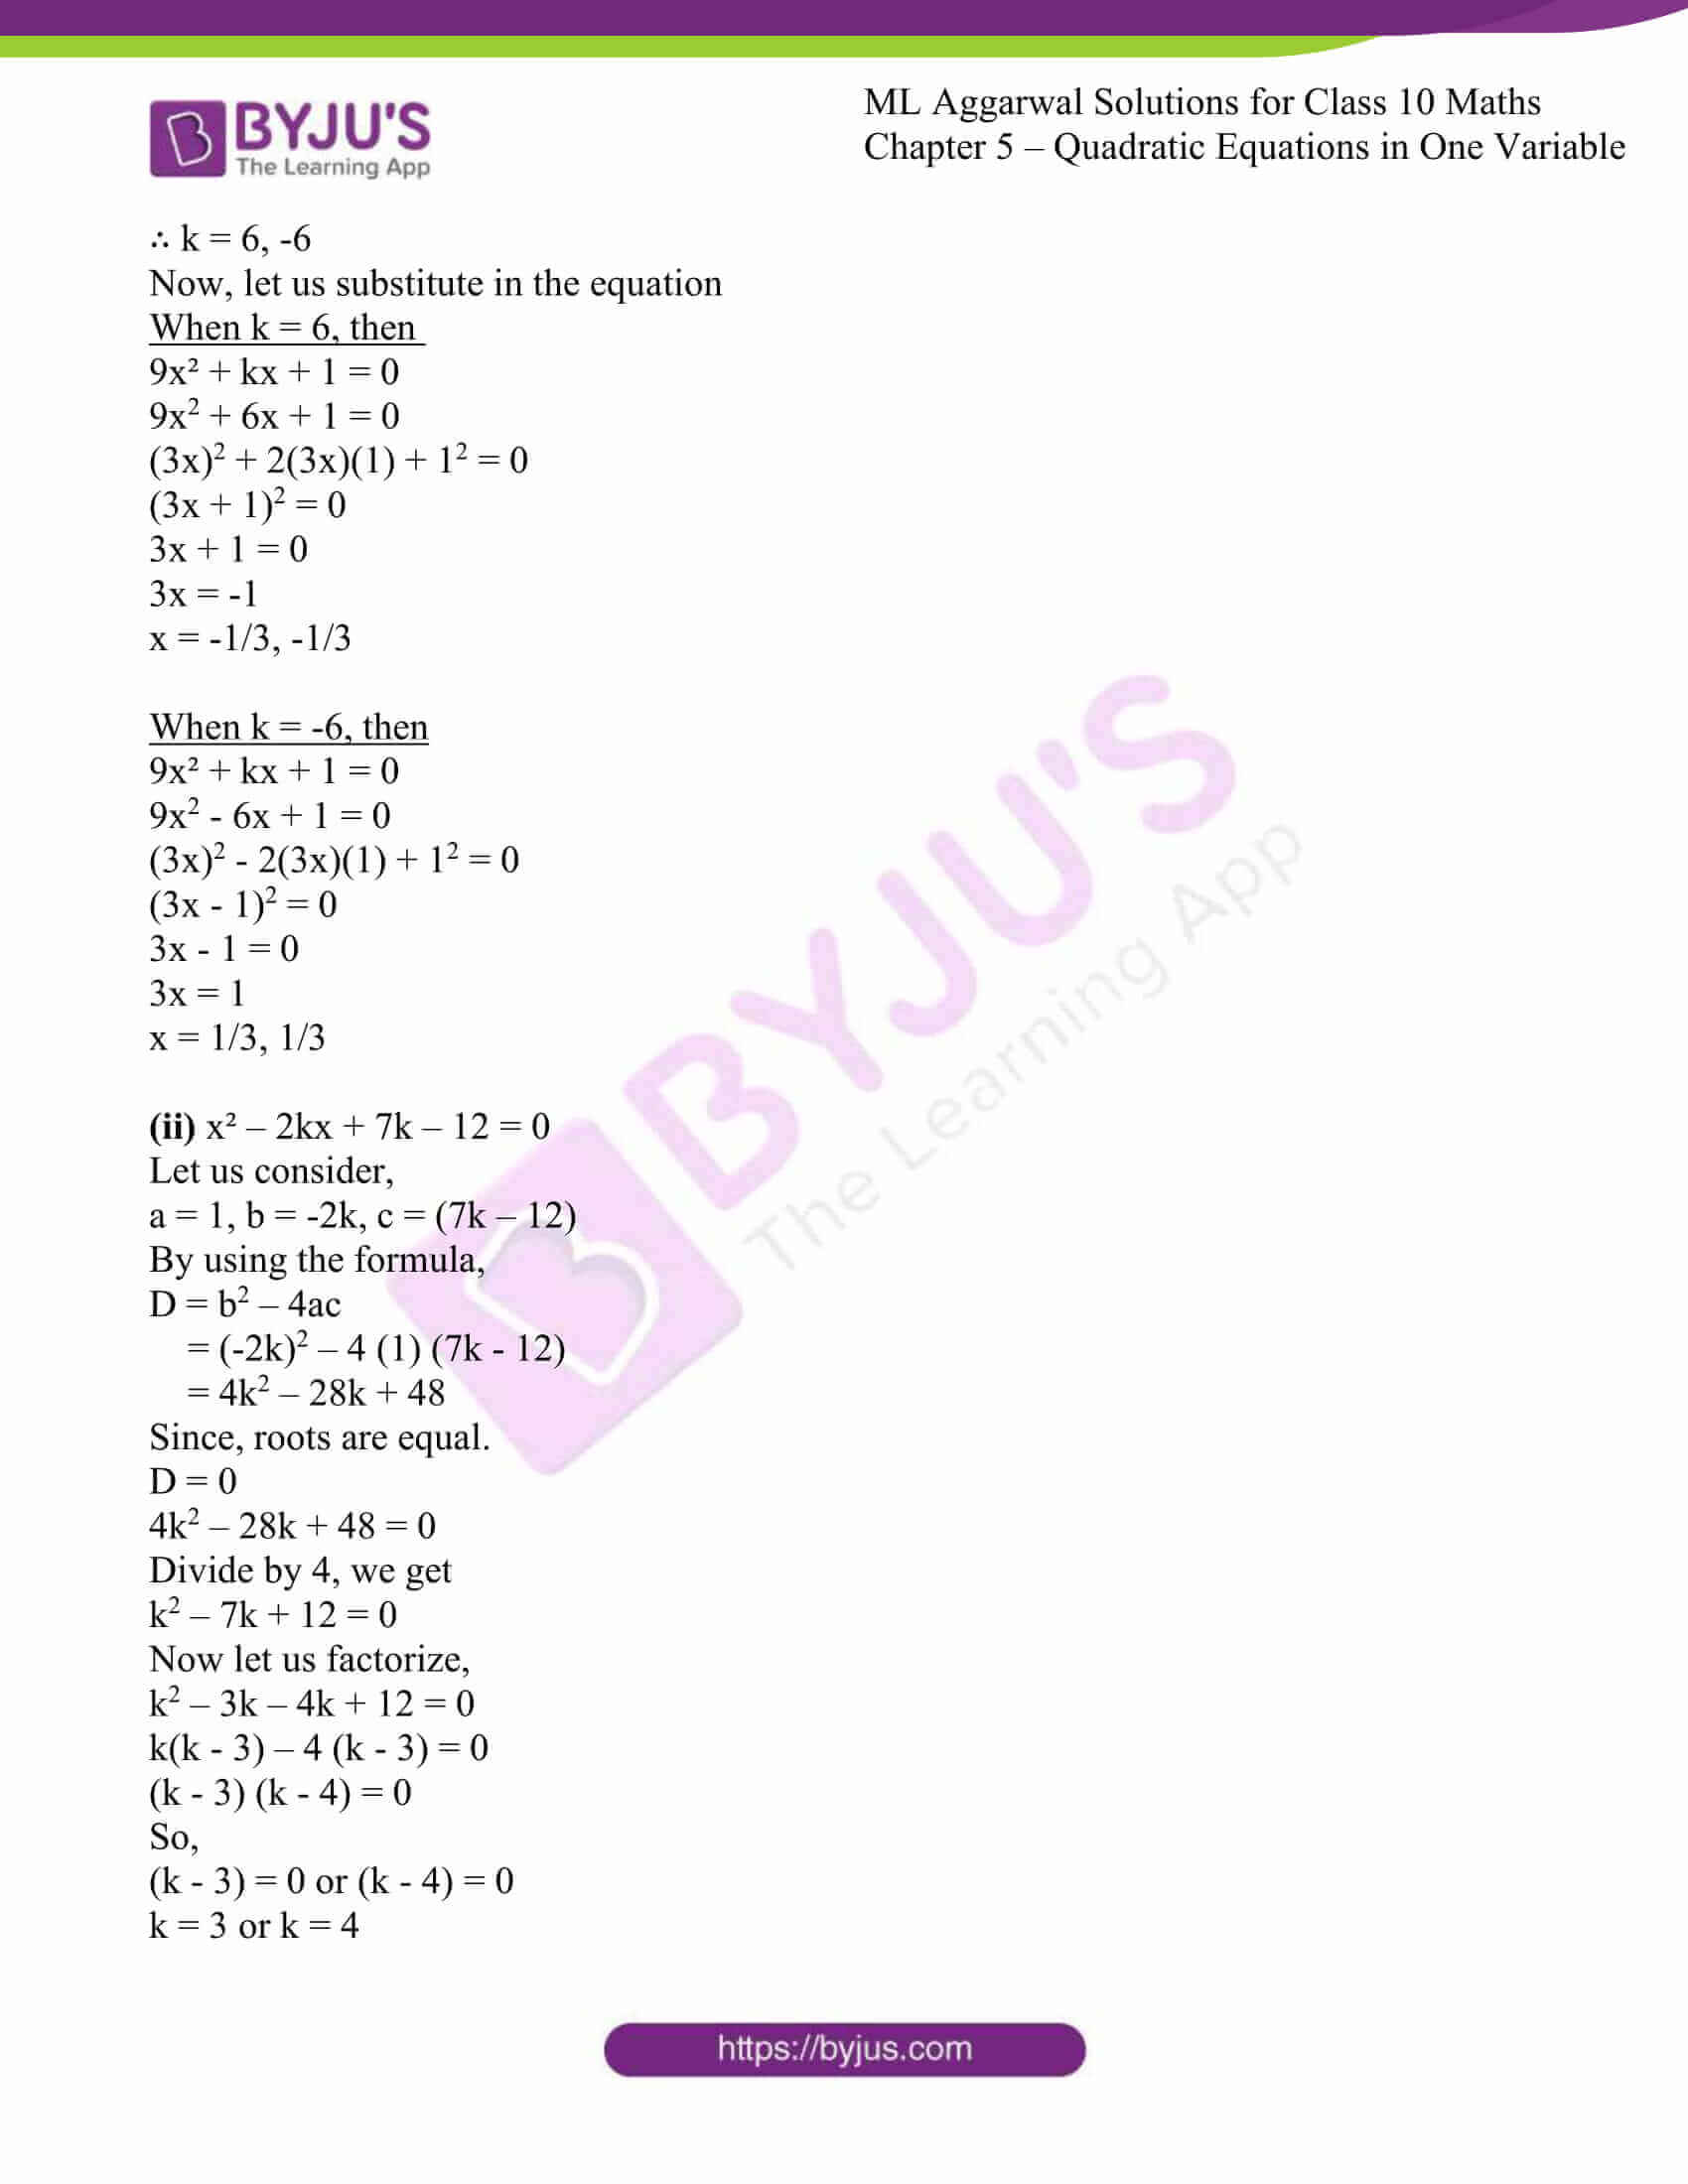 ml aggarwal solutions class 10 maths chapter 5 46